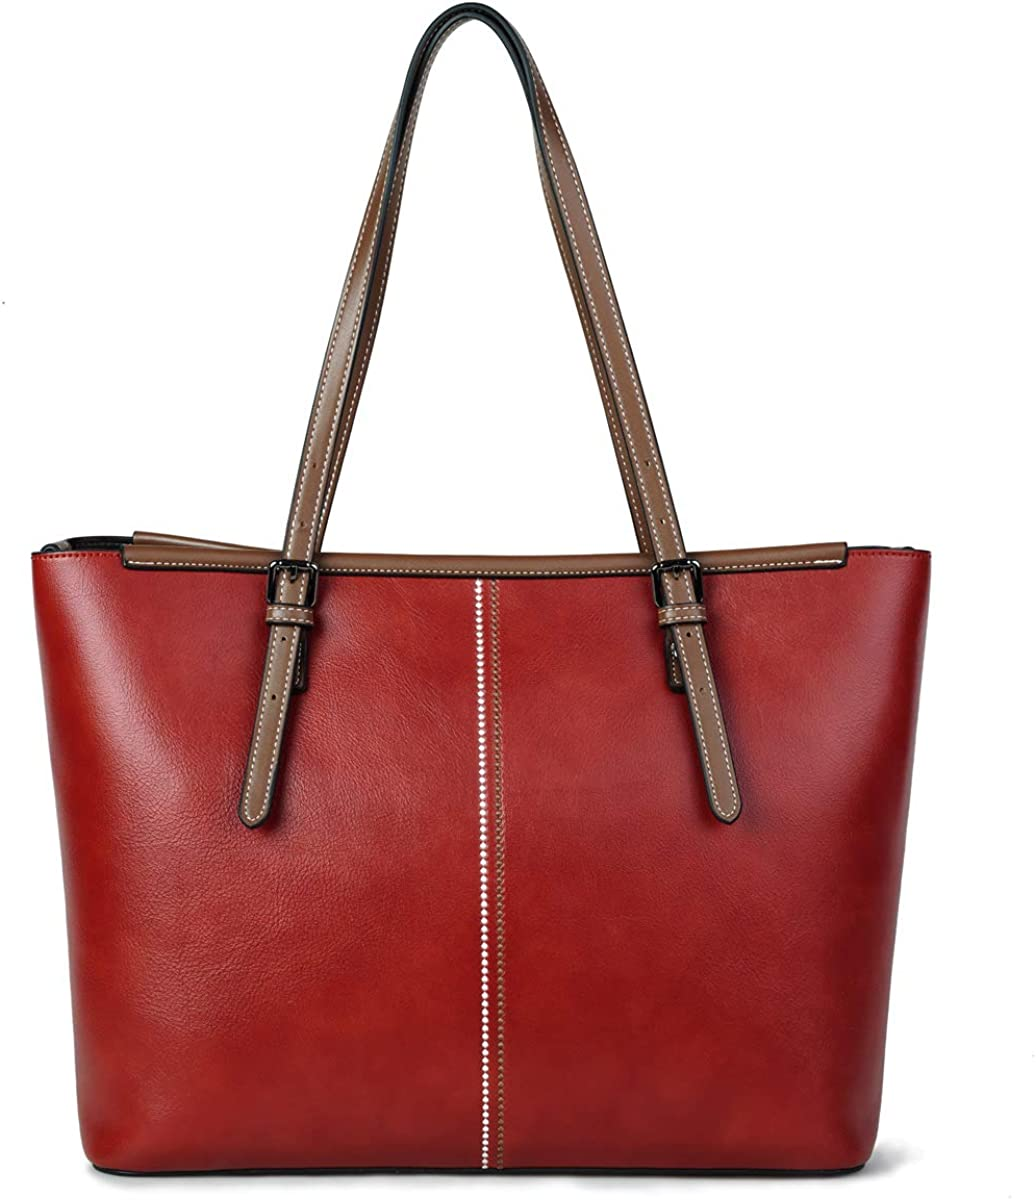 lady leather laptop tote bag office handbag women fashion briefcase 15.6-inch computer work bag